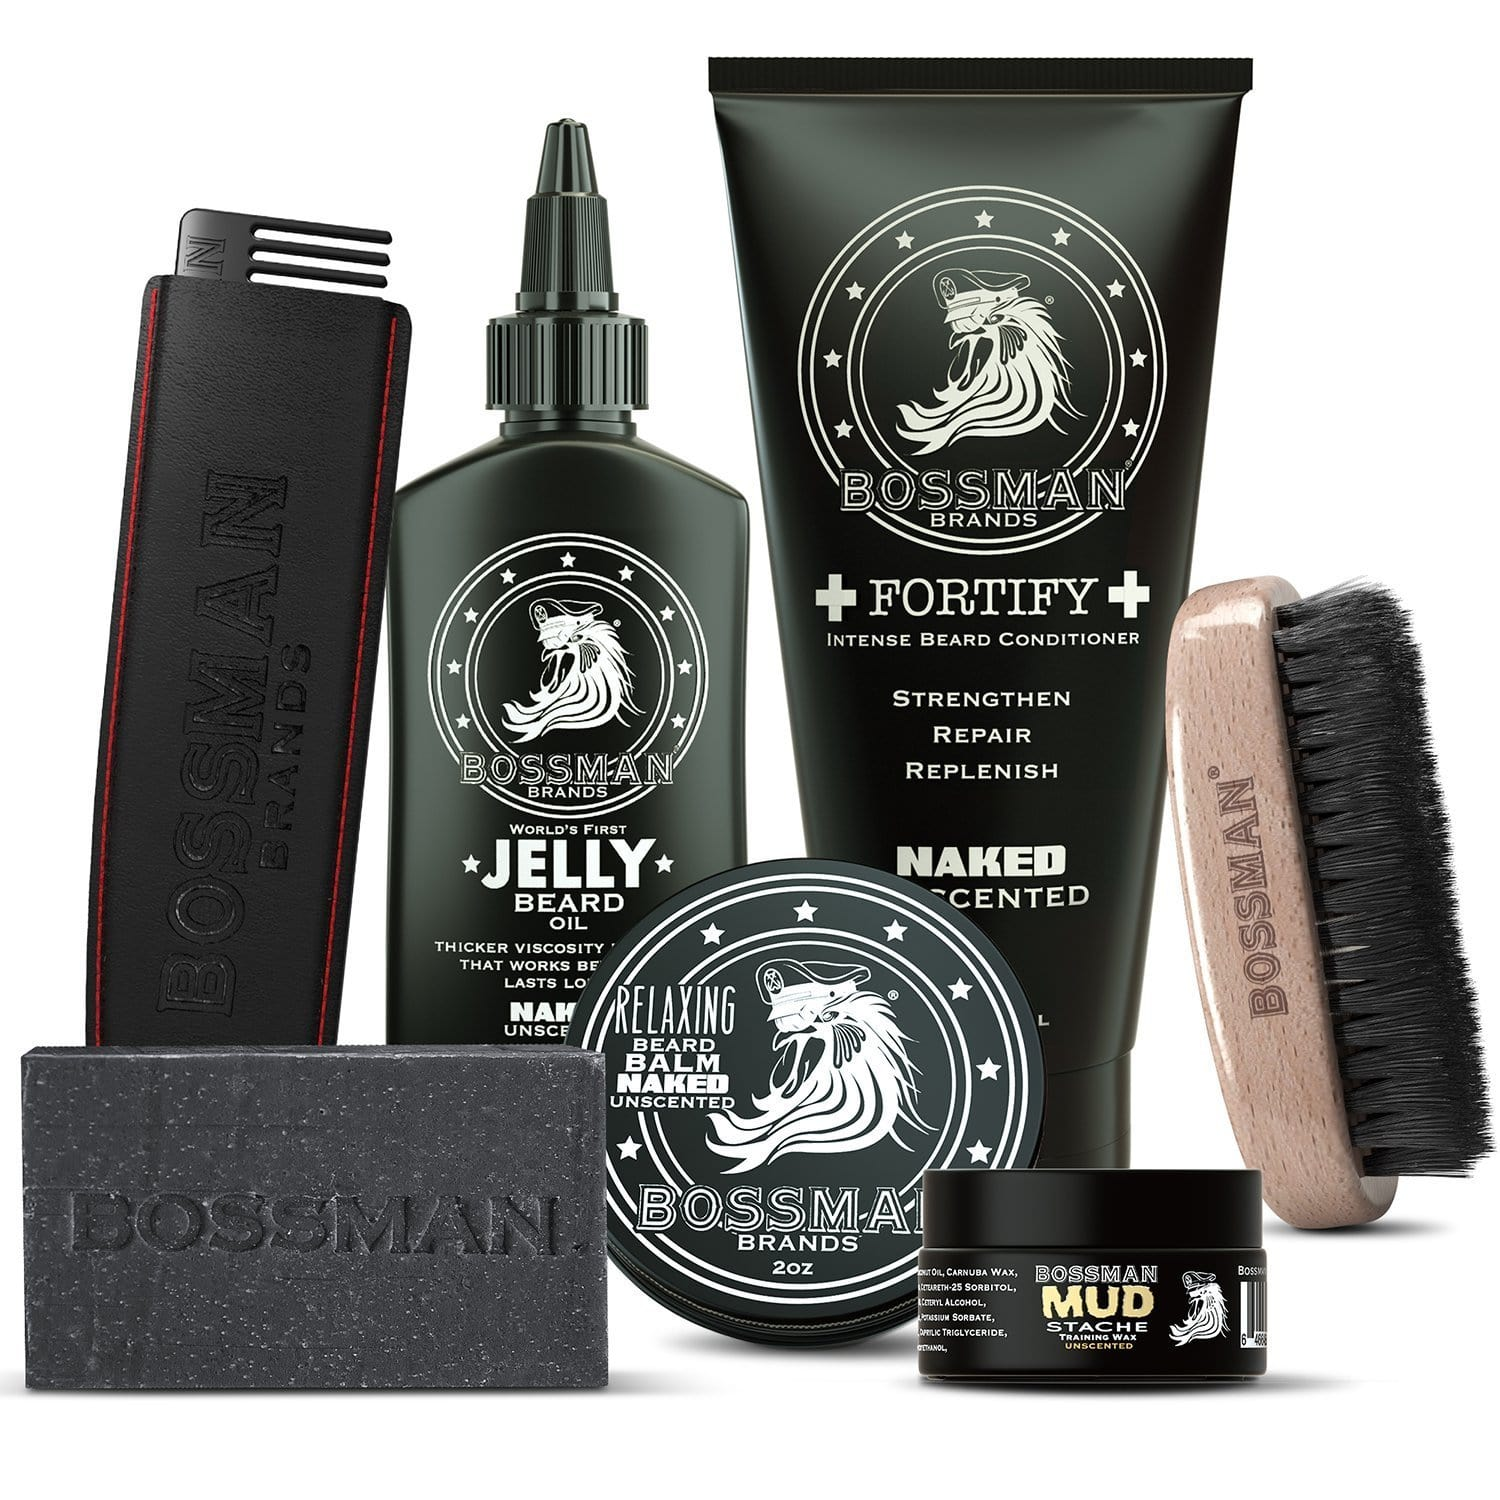 Bossman Big Boss Beard Care Kit - Naked Unscented